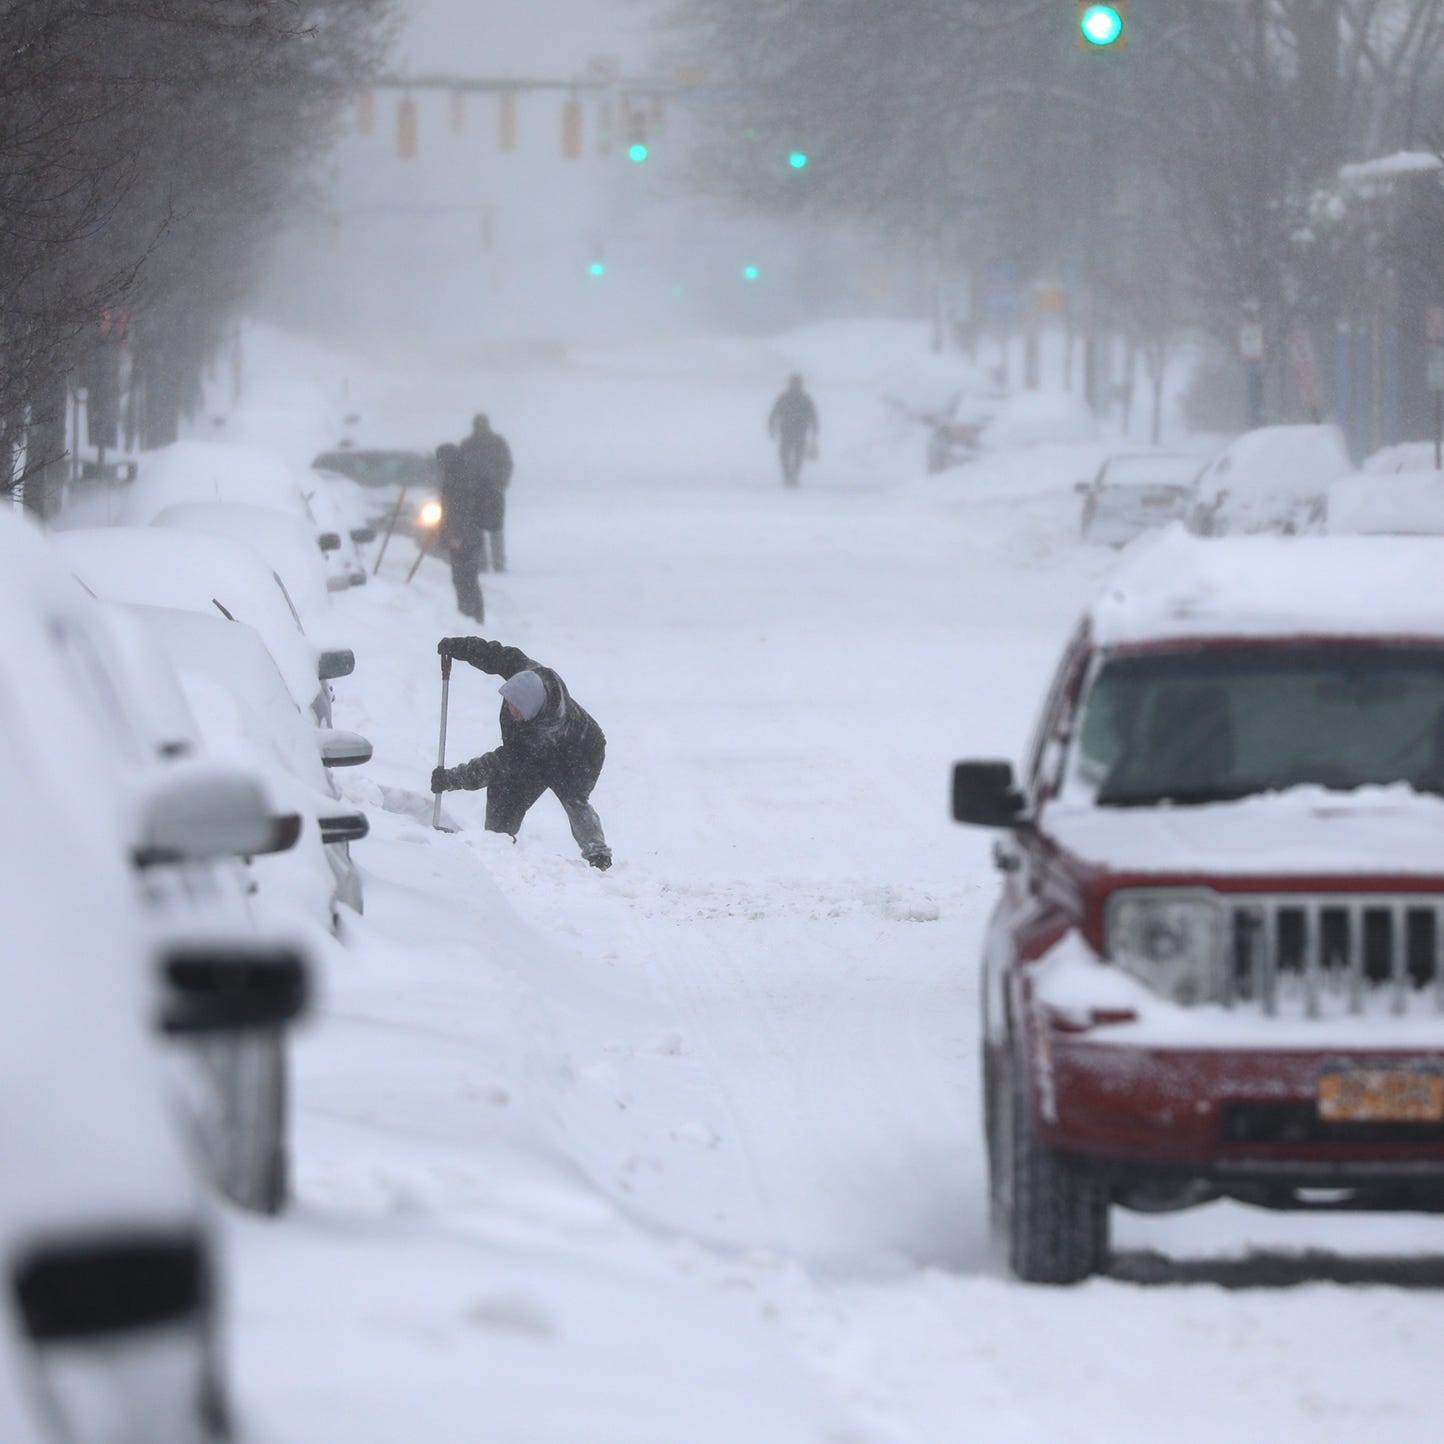 Rochester had a mild winter, but just saying that means a storm could come soon